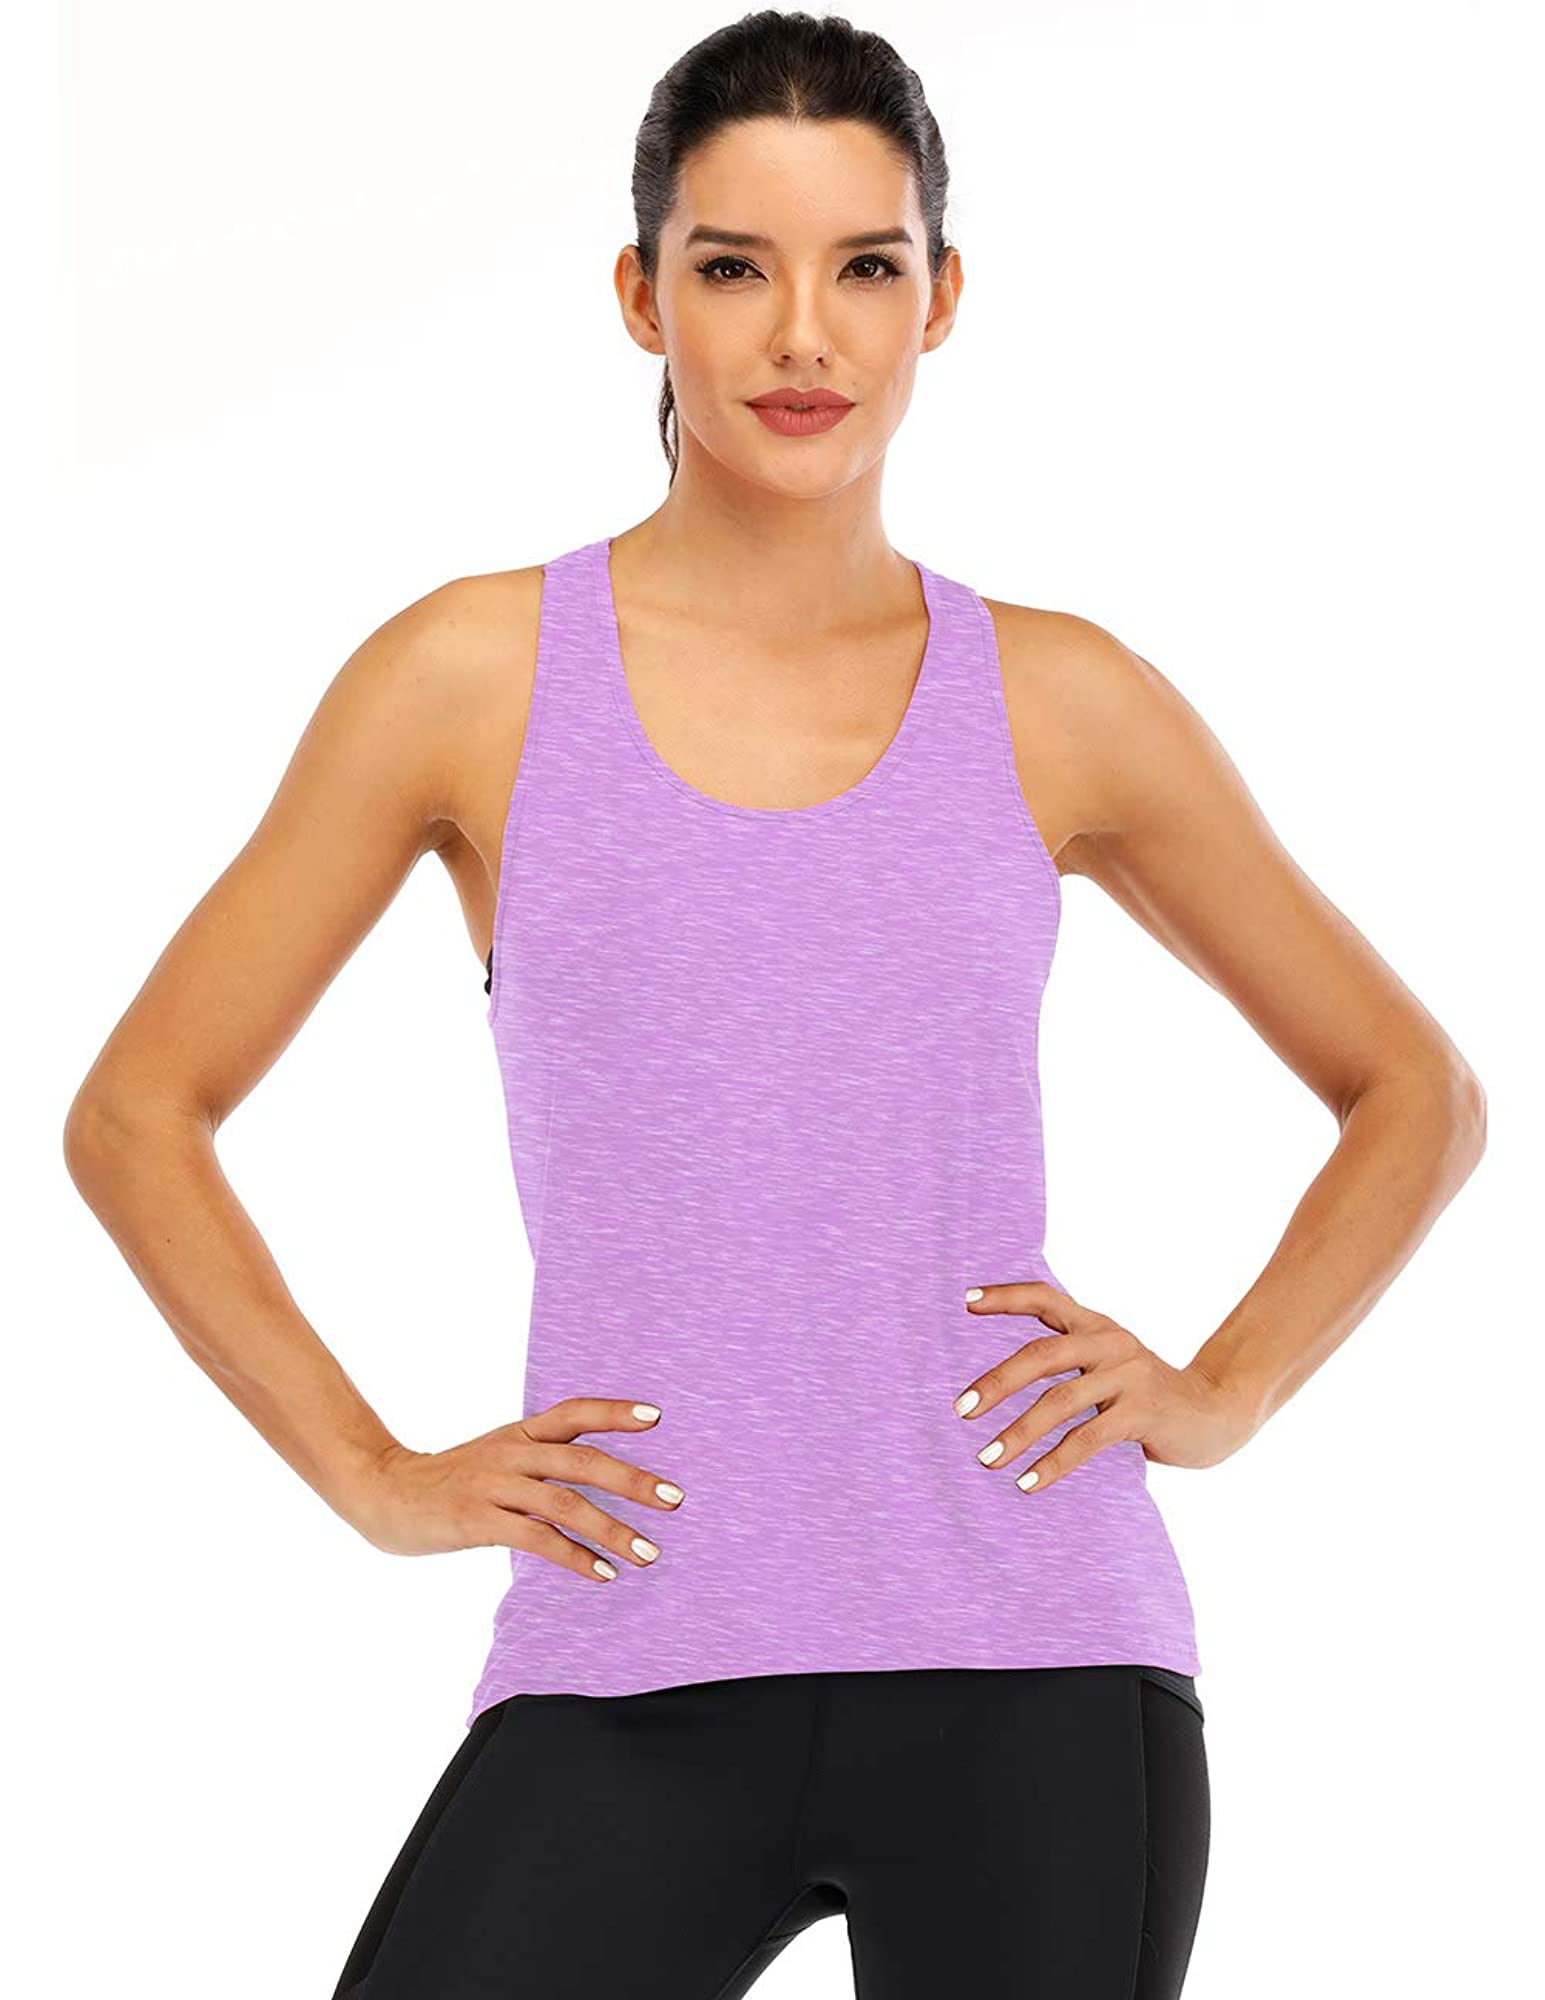 Cross Back Workout Tops For Women's